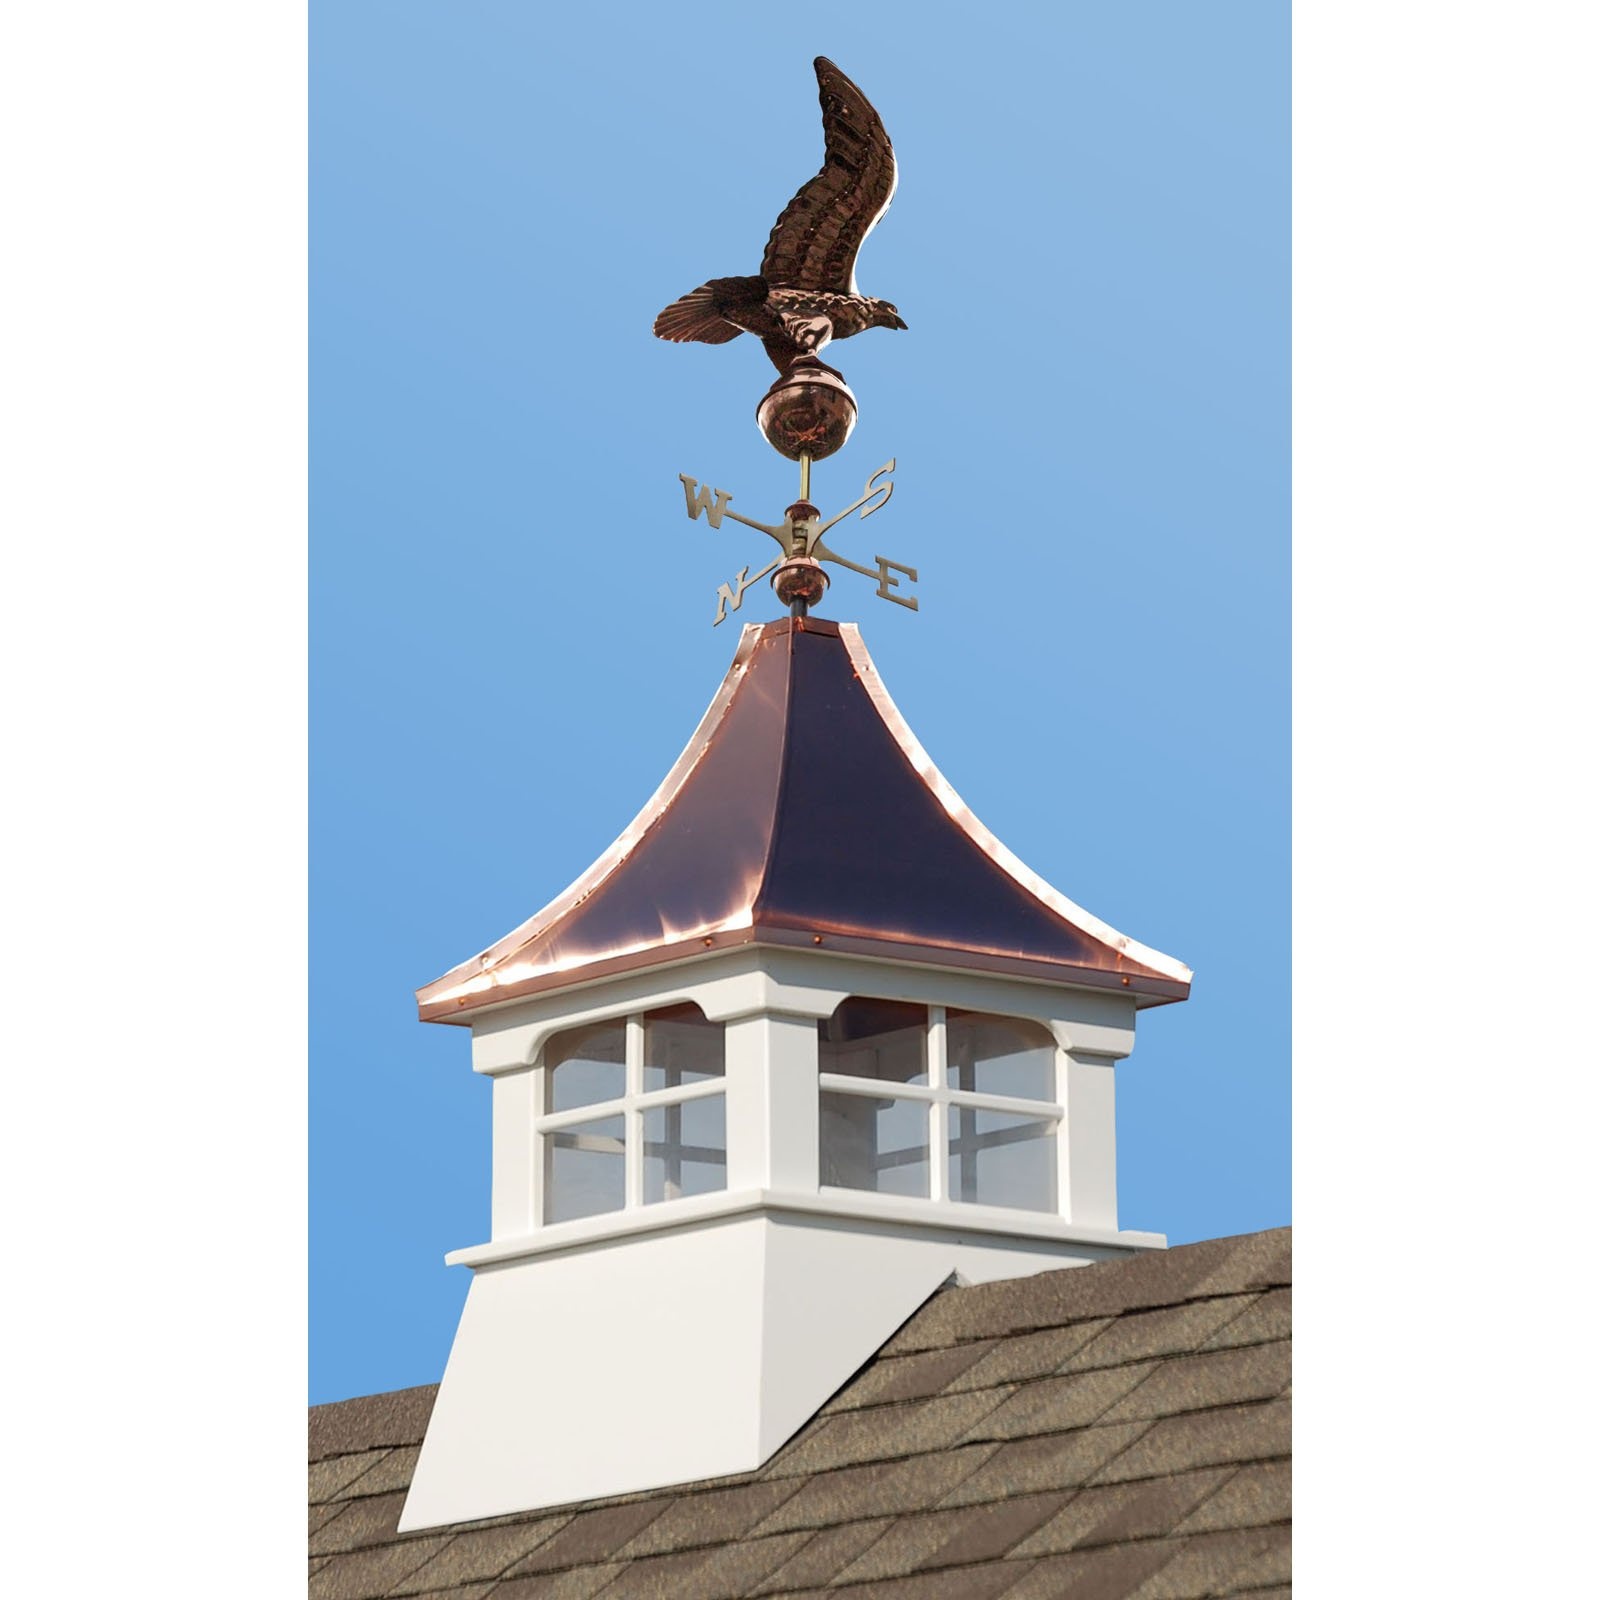 Image of Accentua Charleston Cupola with Eagle Weathervane